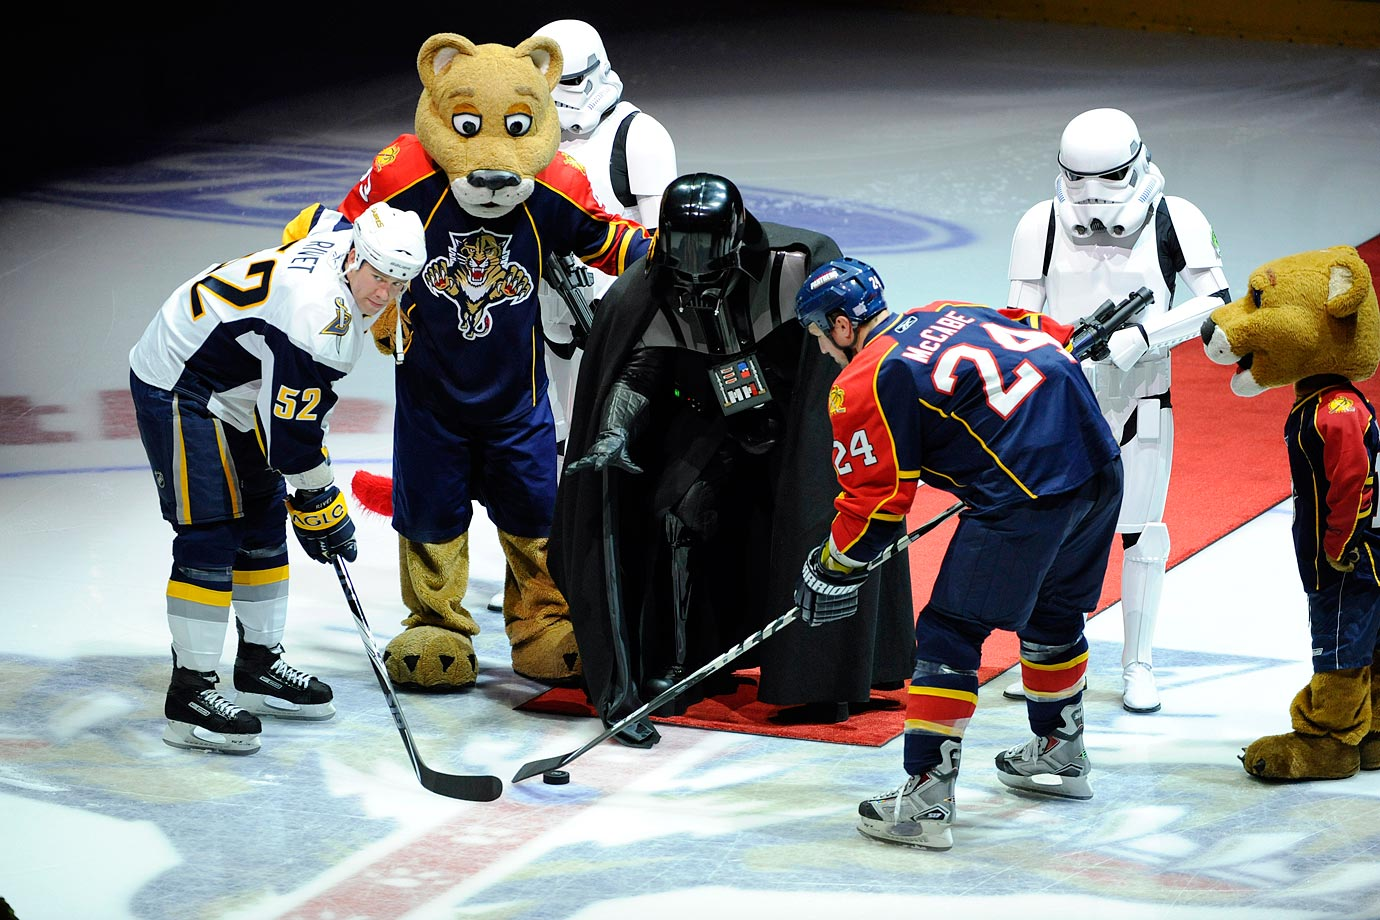 Darth Vader and stormtroopers join Florida Panthers mascot Stanley C. Panther on the ice as Vader drops the puck for the Buffalo Sabres' Craig Rivet and Panthers' Bryan McCabe on Oct. 21, 2009 at BankAtlantic Center in Sunrise, Florida.